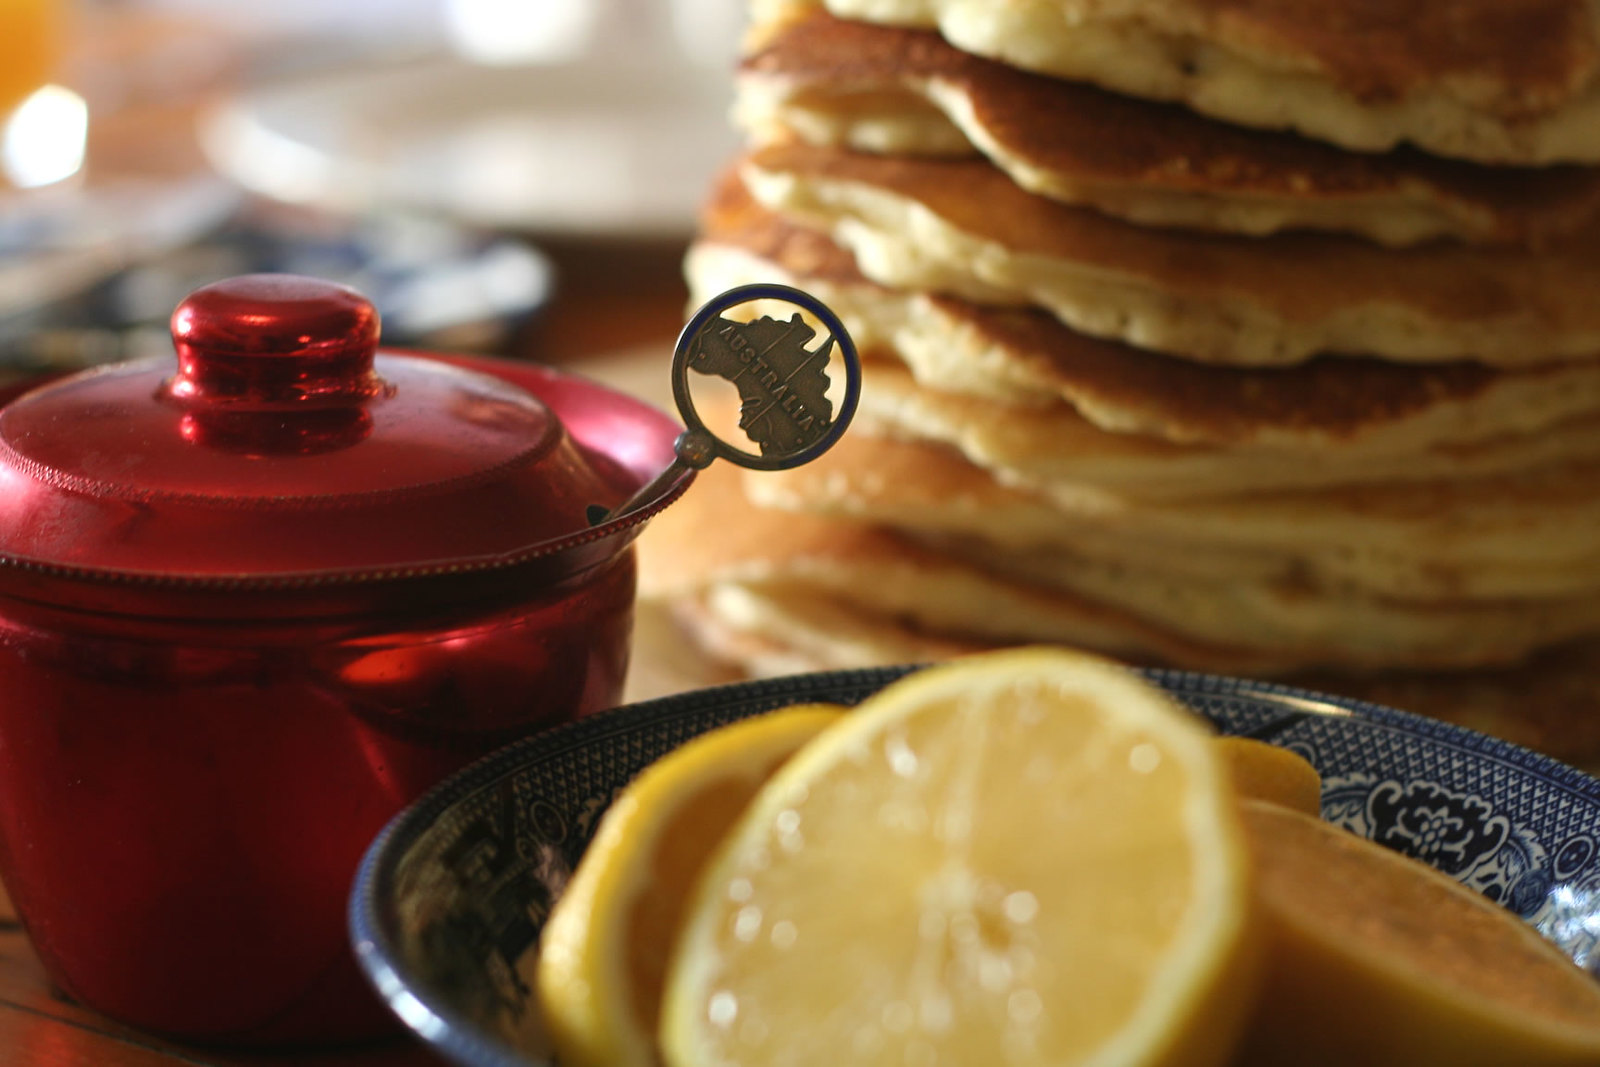 A bowl of lemons, a red teapot, and a stack of lemons sitting on a table